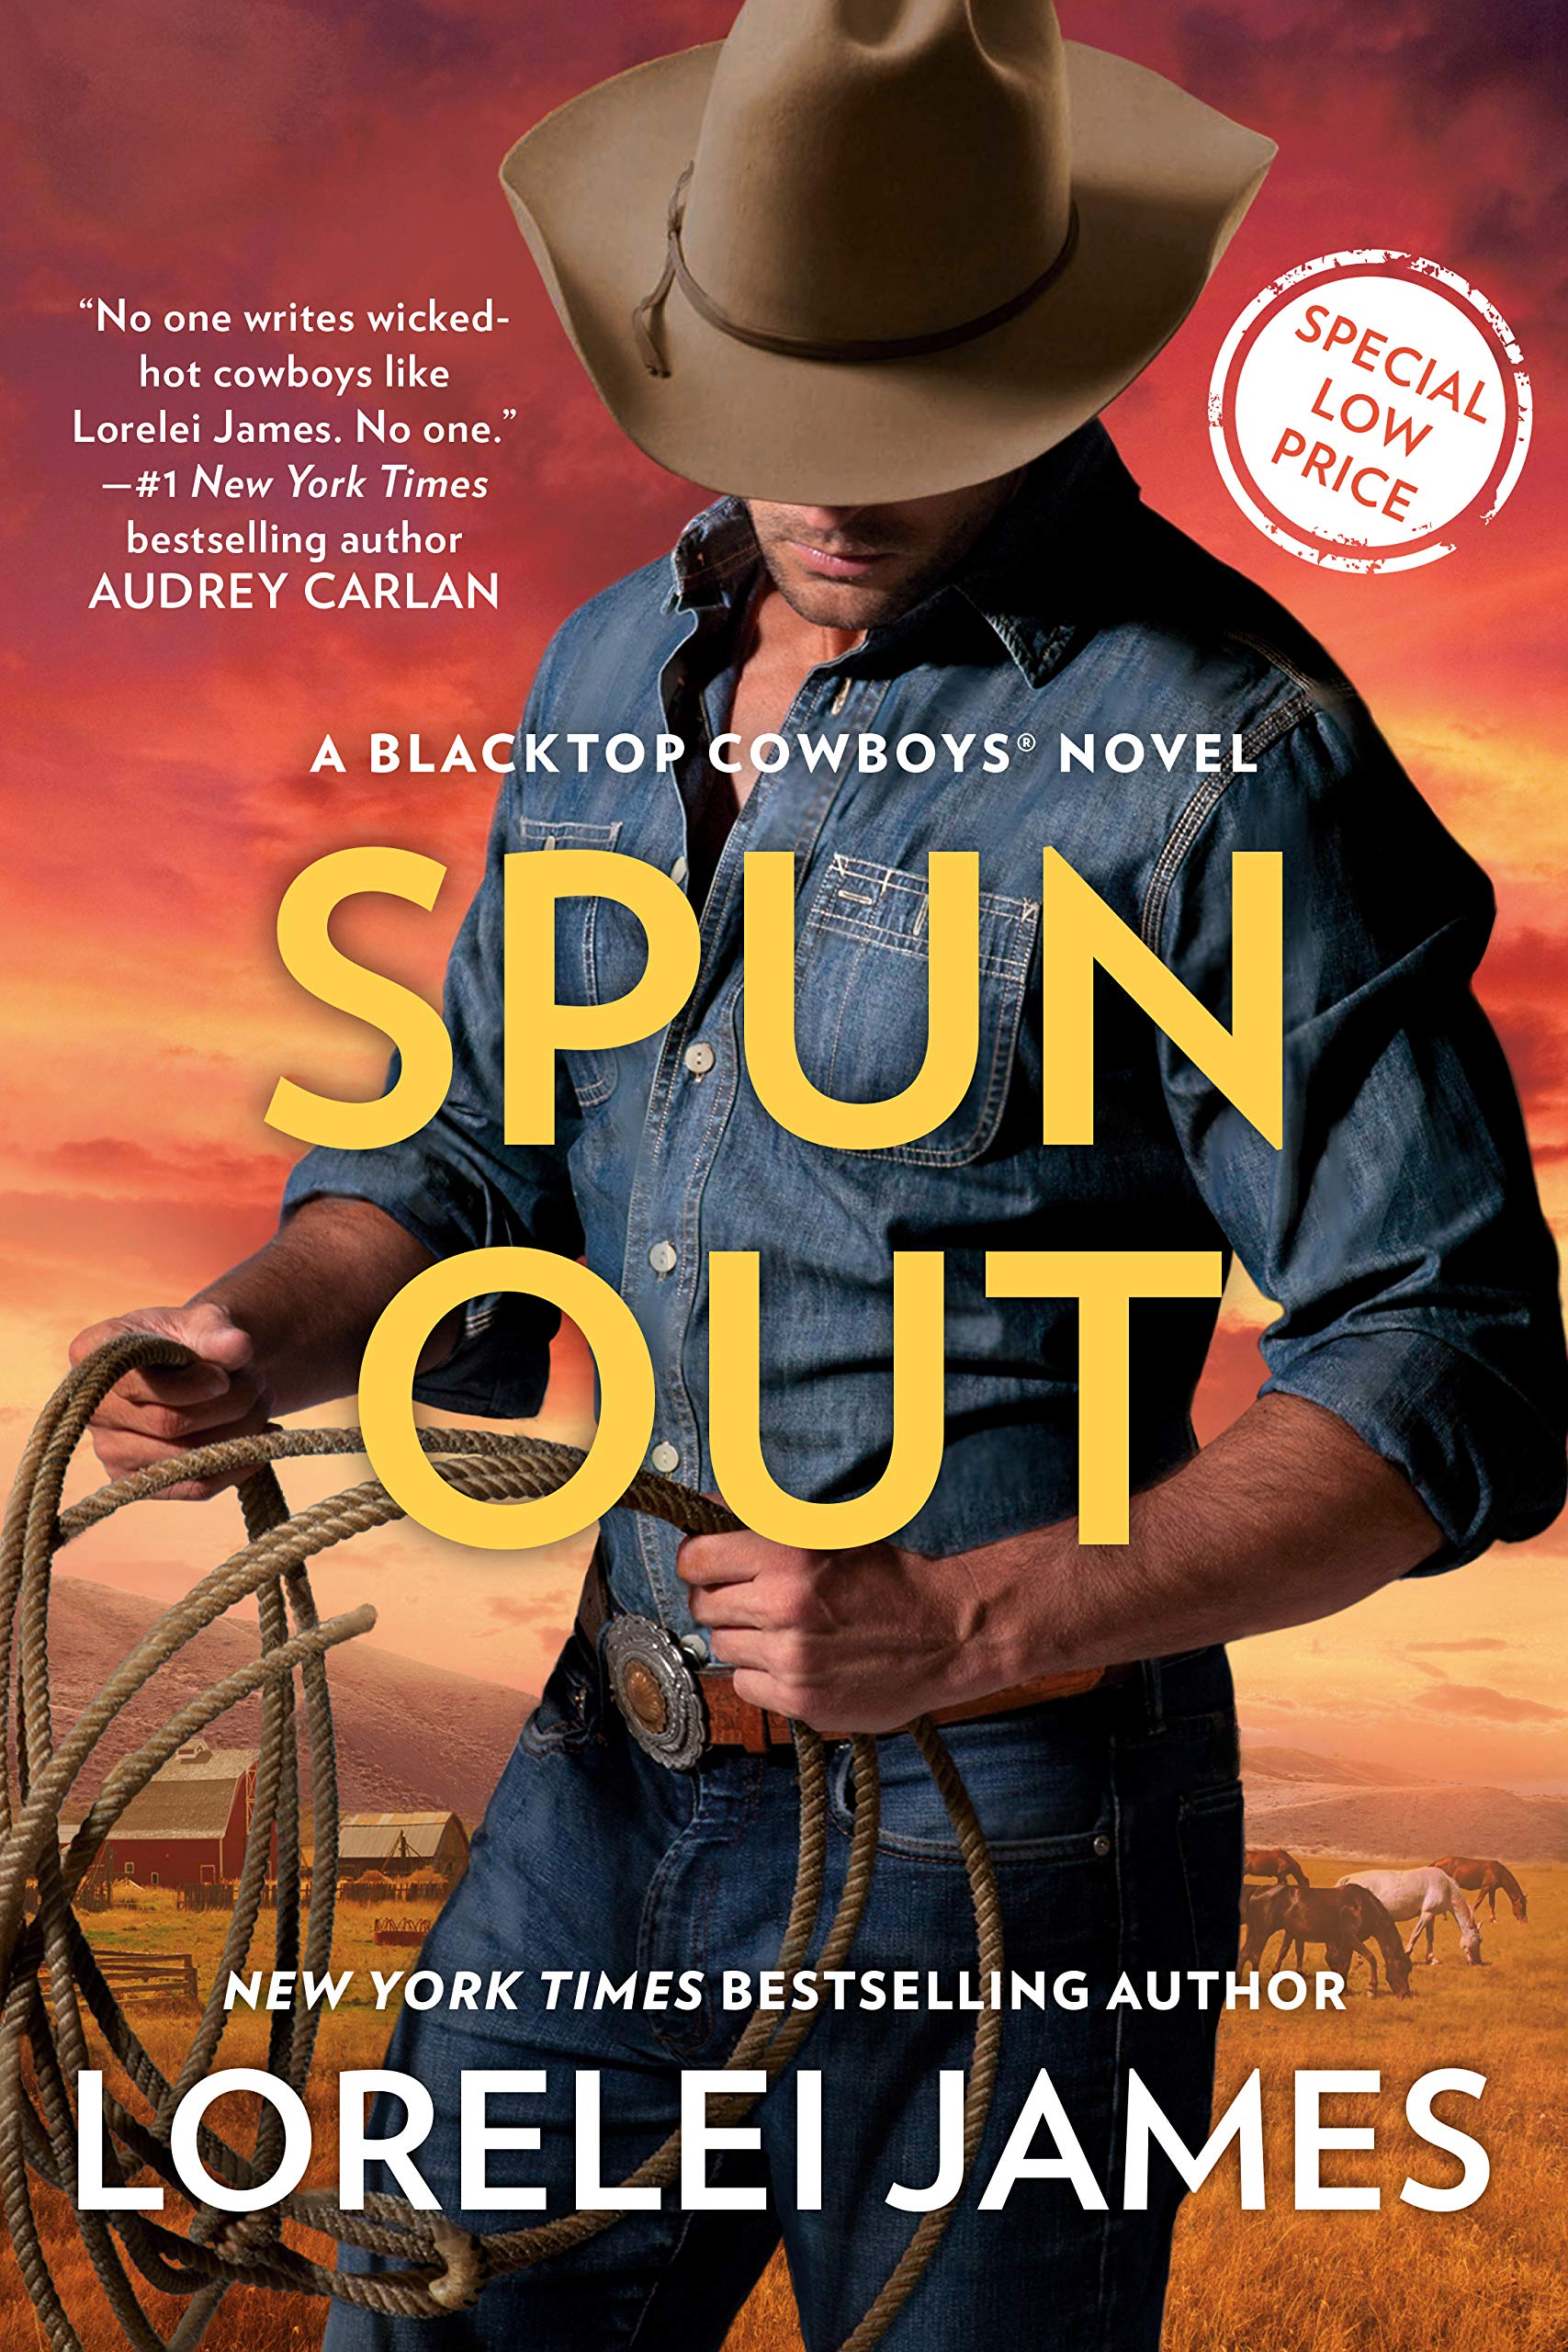 Image result for Spun out / by James, Lorelei